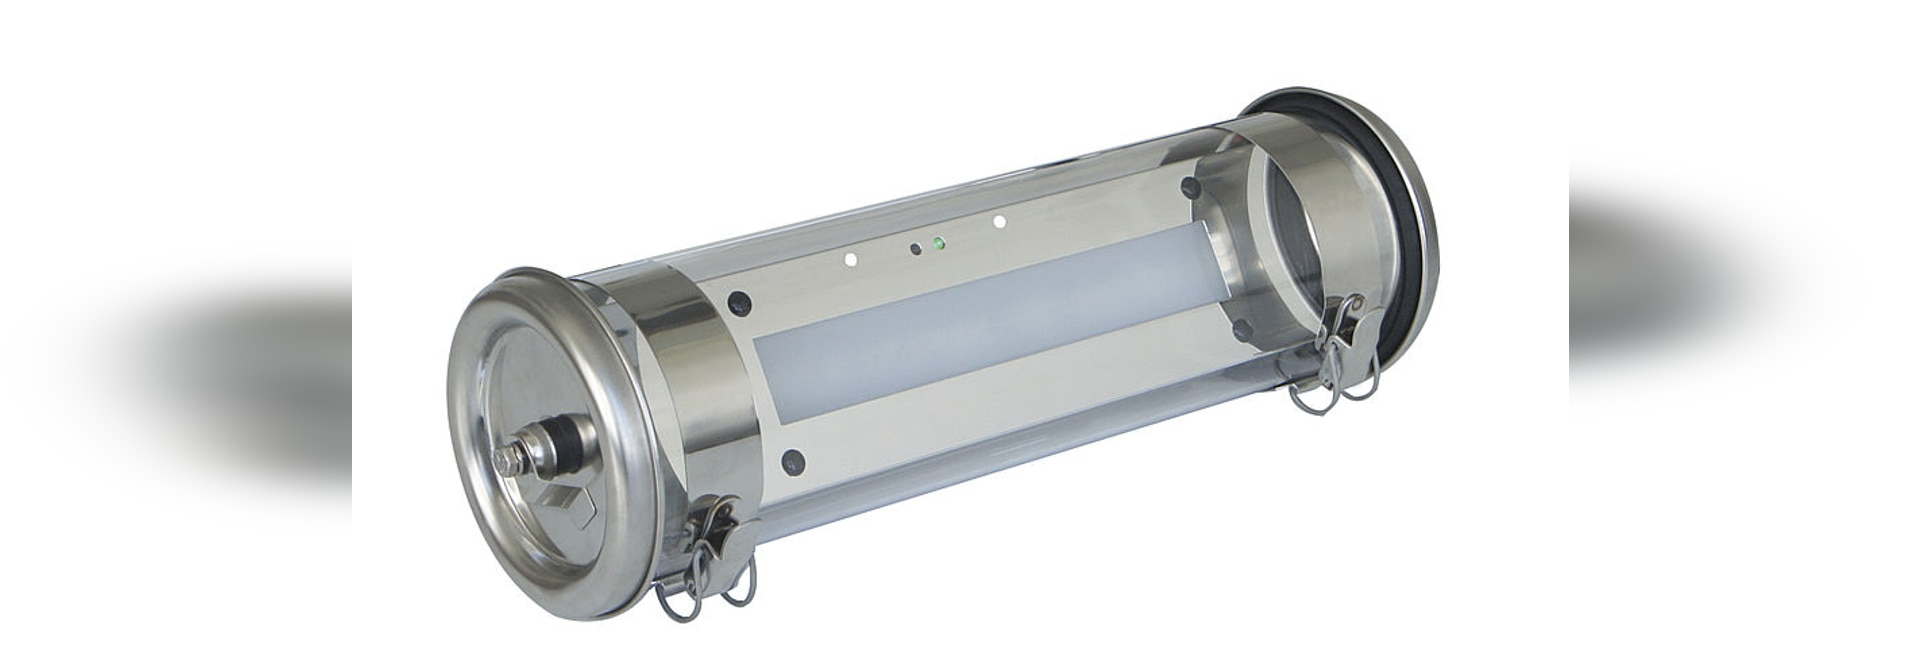 COULOMB BAEH, self-contained tubular LED luminaire for emergency lighting in residential buildings